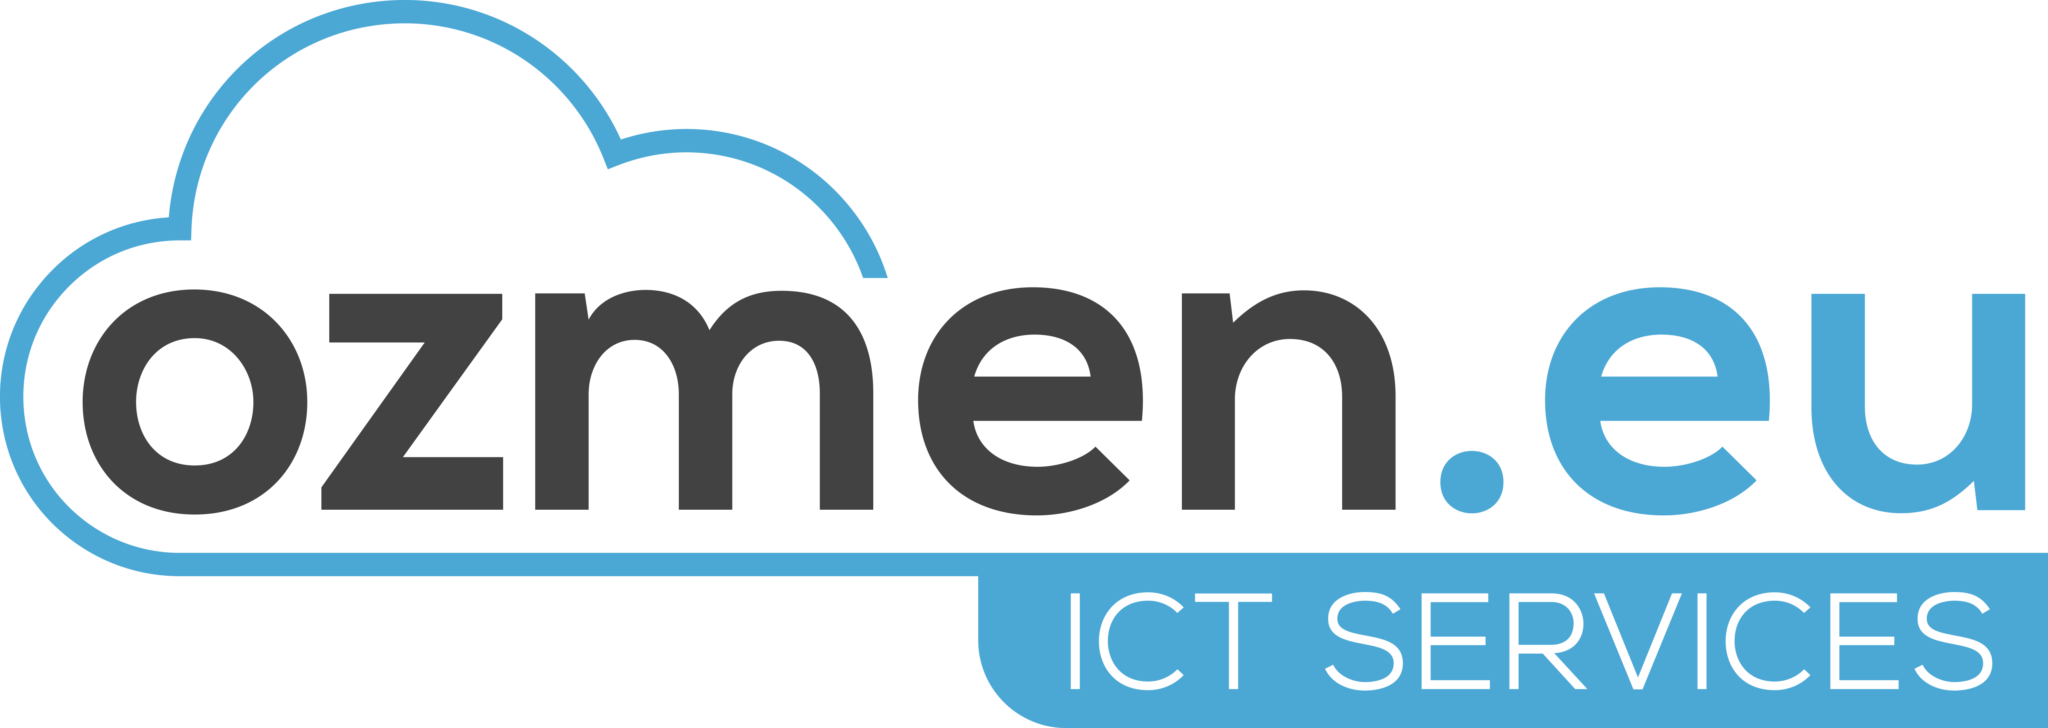 Özmen ICT Services